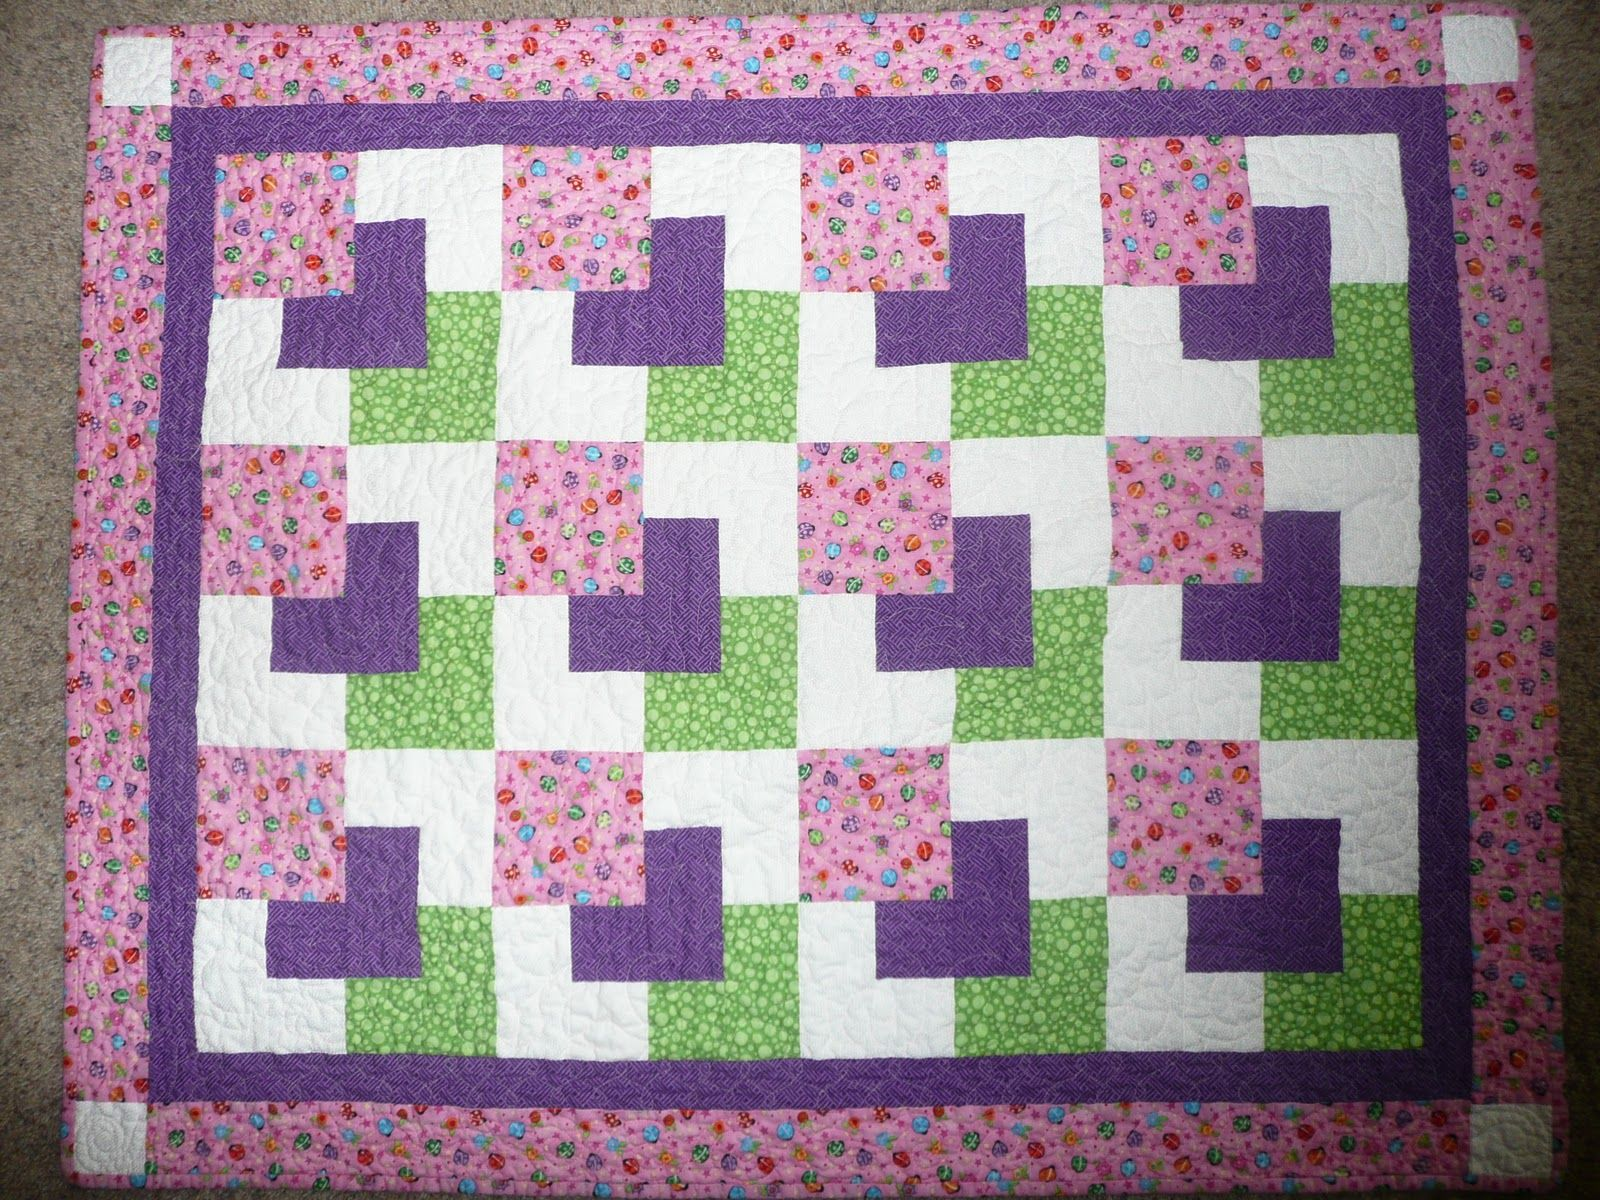 childrens dimentional quilt patterns | am waiting to get good ... : block patterns for quilts - Adamdwight.com